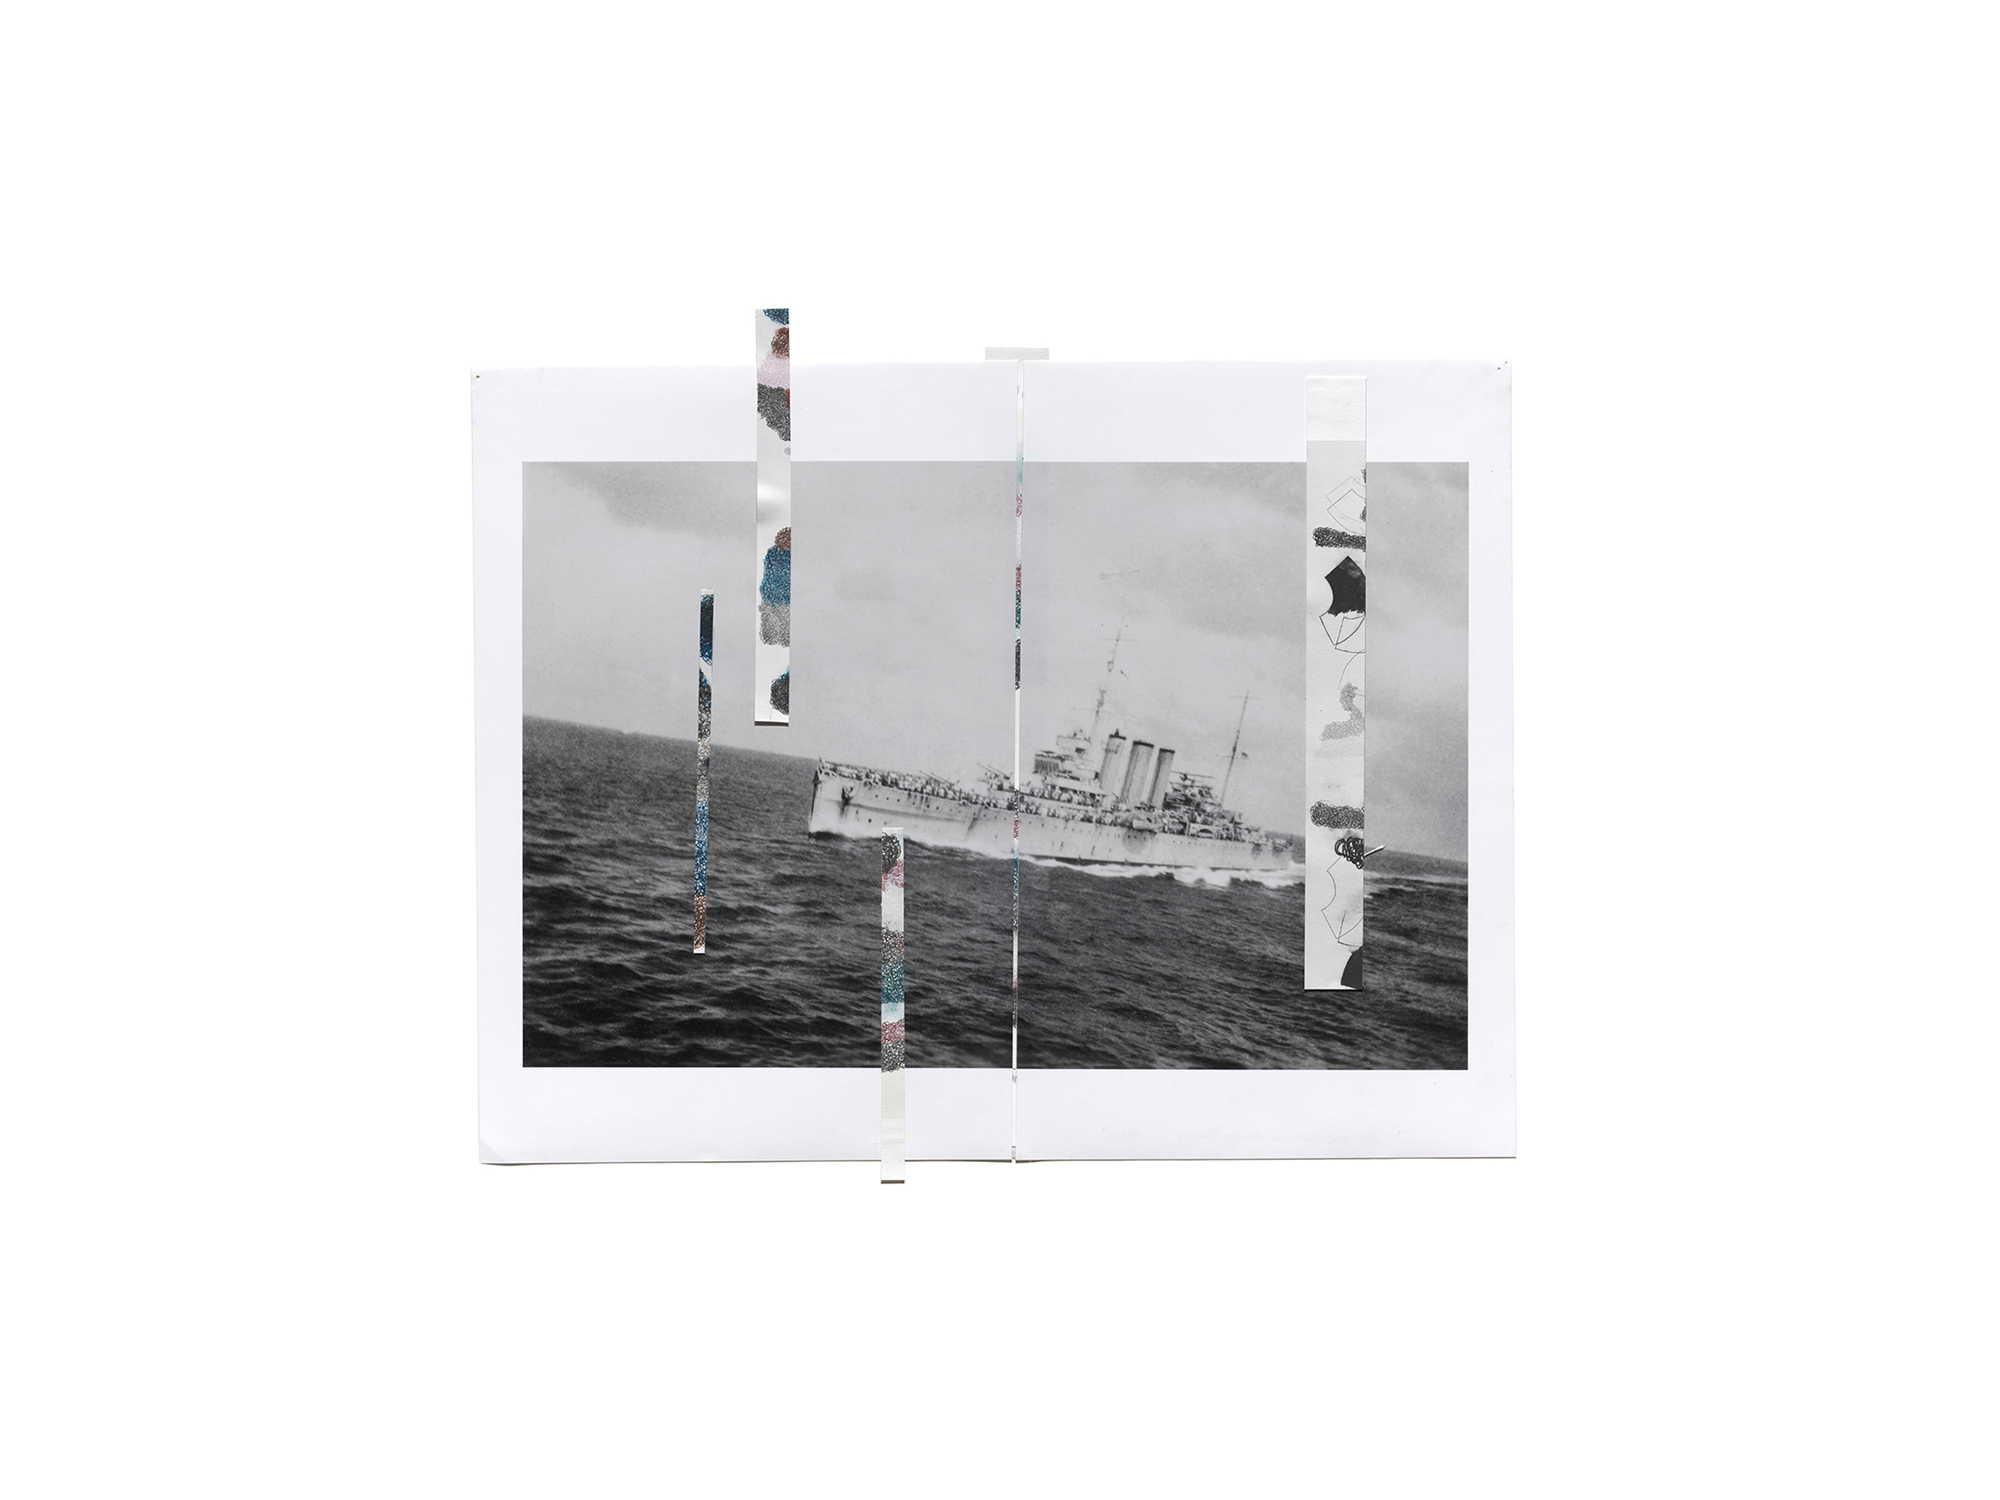 Denise Green   RJG: HMS Canberra Leaving the Convoy , 2016 one photograph and five drawings 47 x 56.5cm   ARTIST BIO